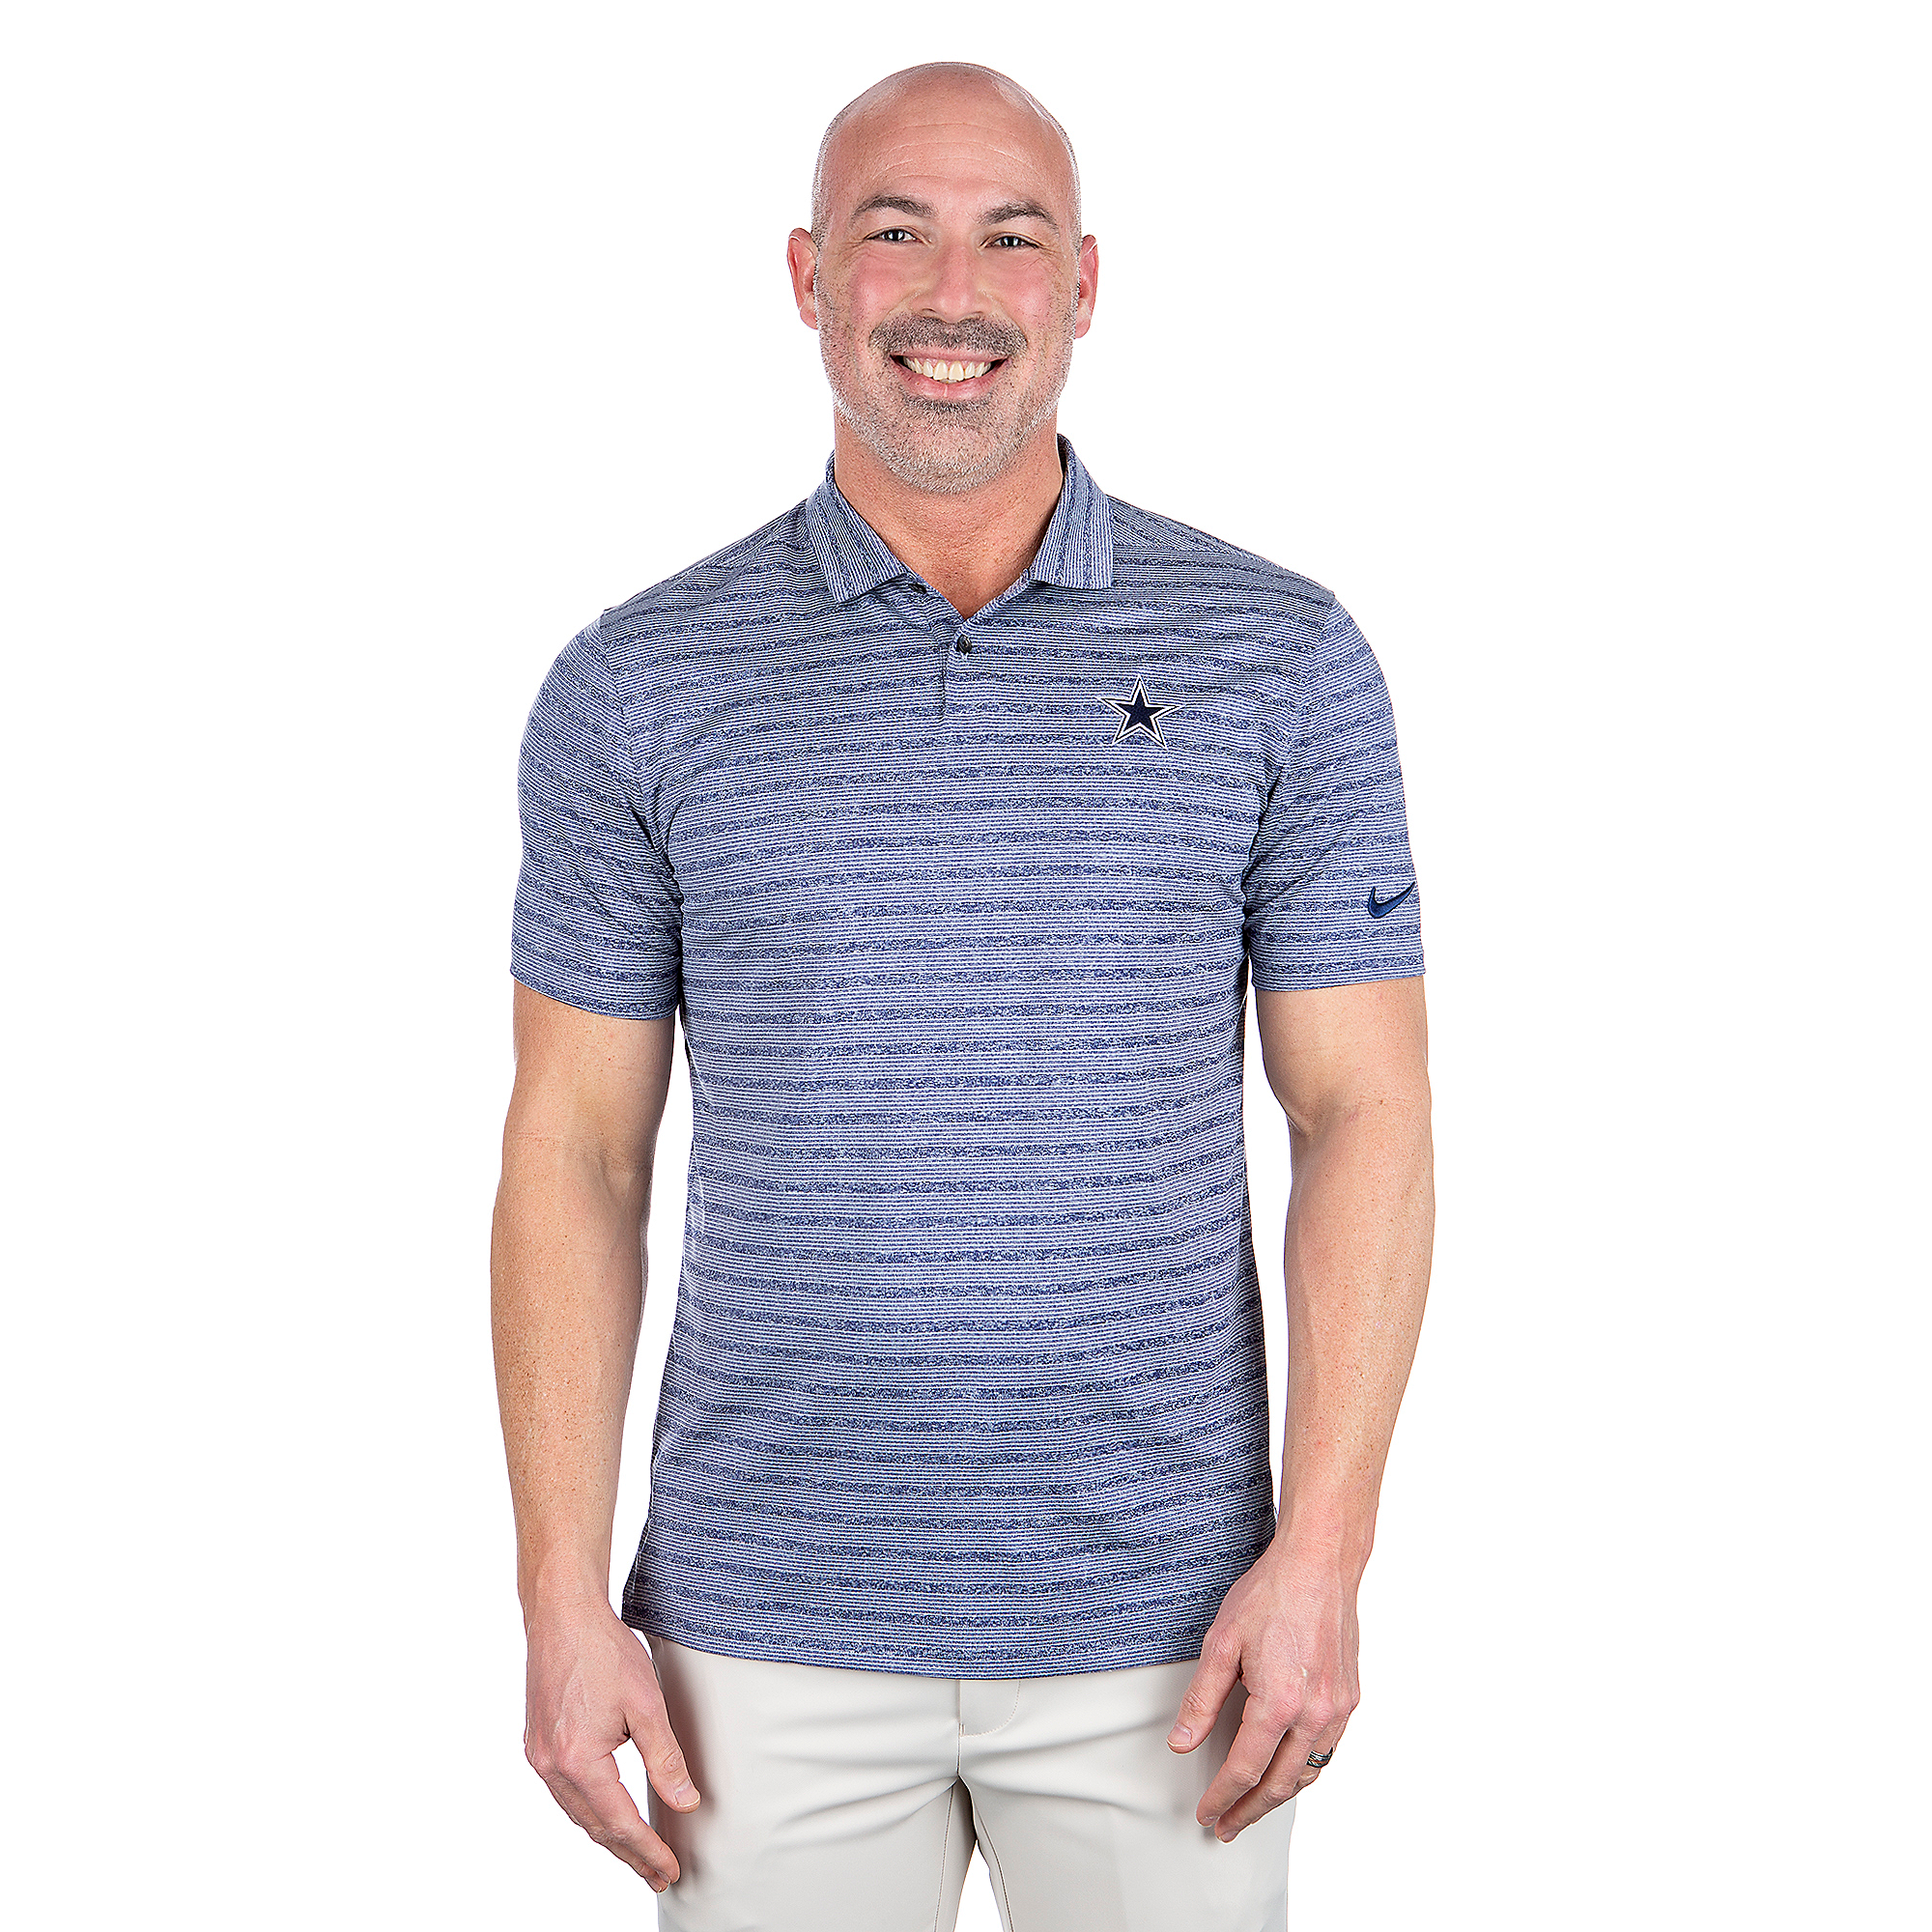 Dallas Cowboys Nike Dri-FIT Mens Vapor Stripe Polo